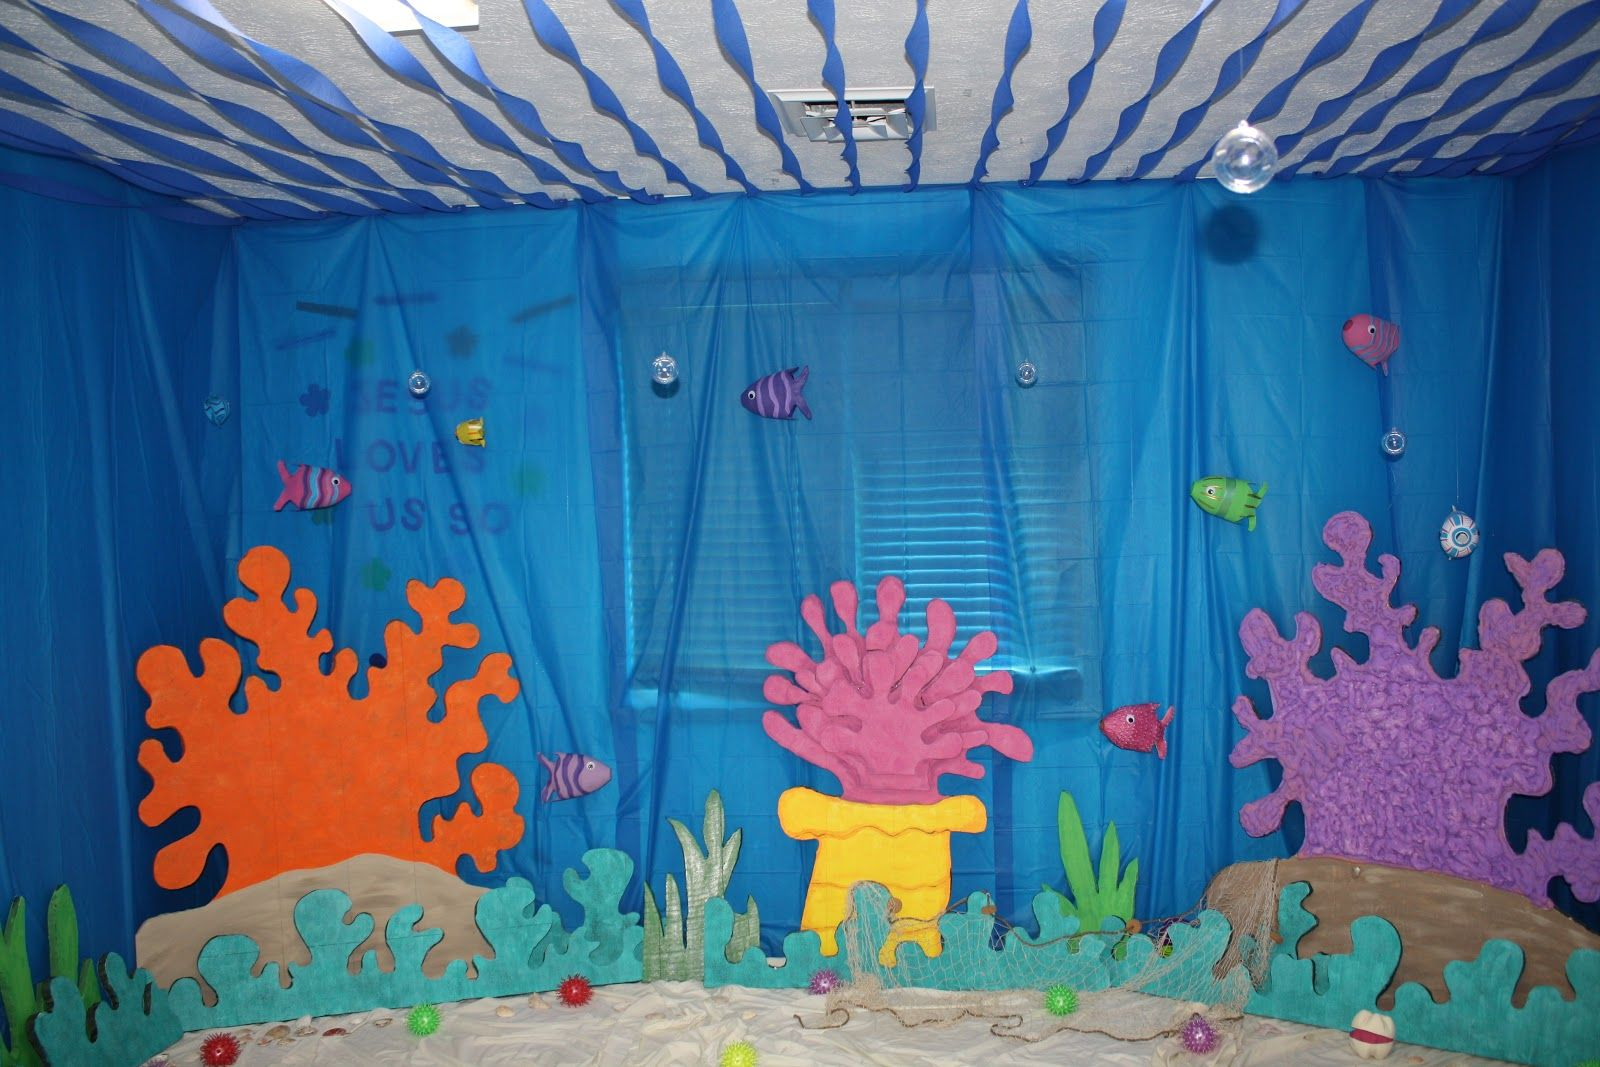 Stunning Under The Sea Decorating Ideas Kids Would Love Under